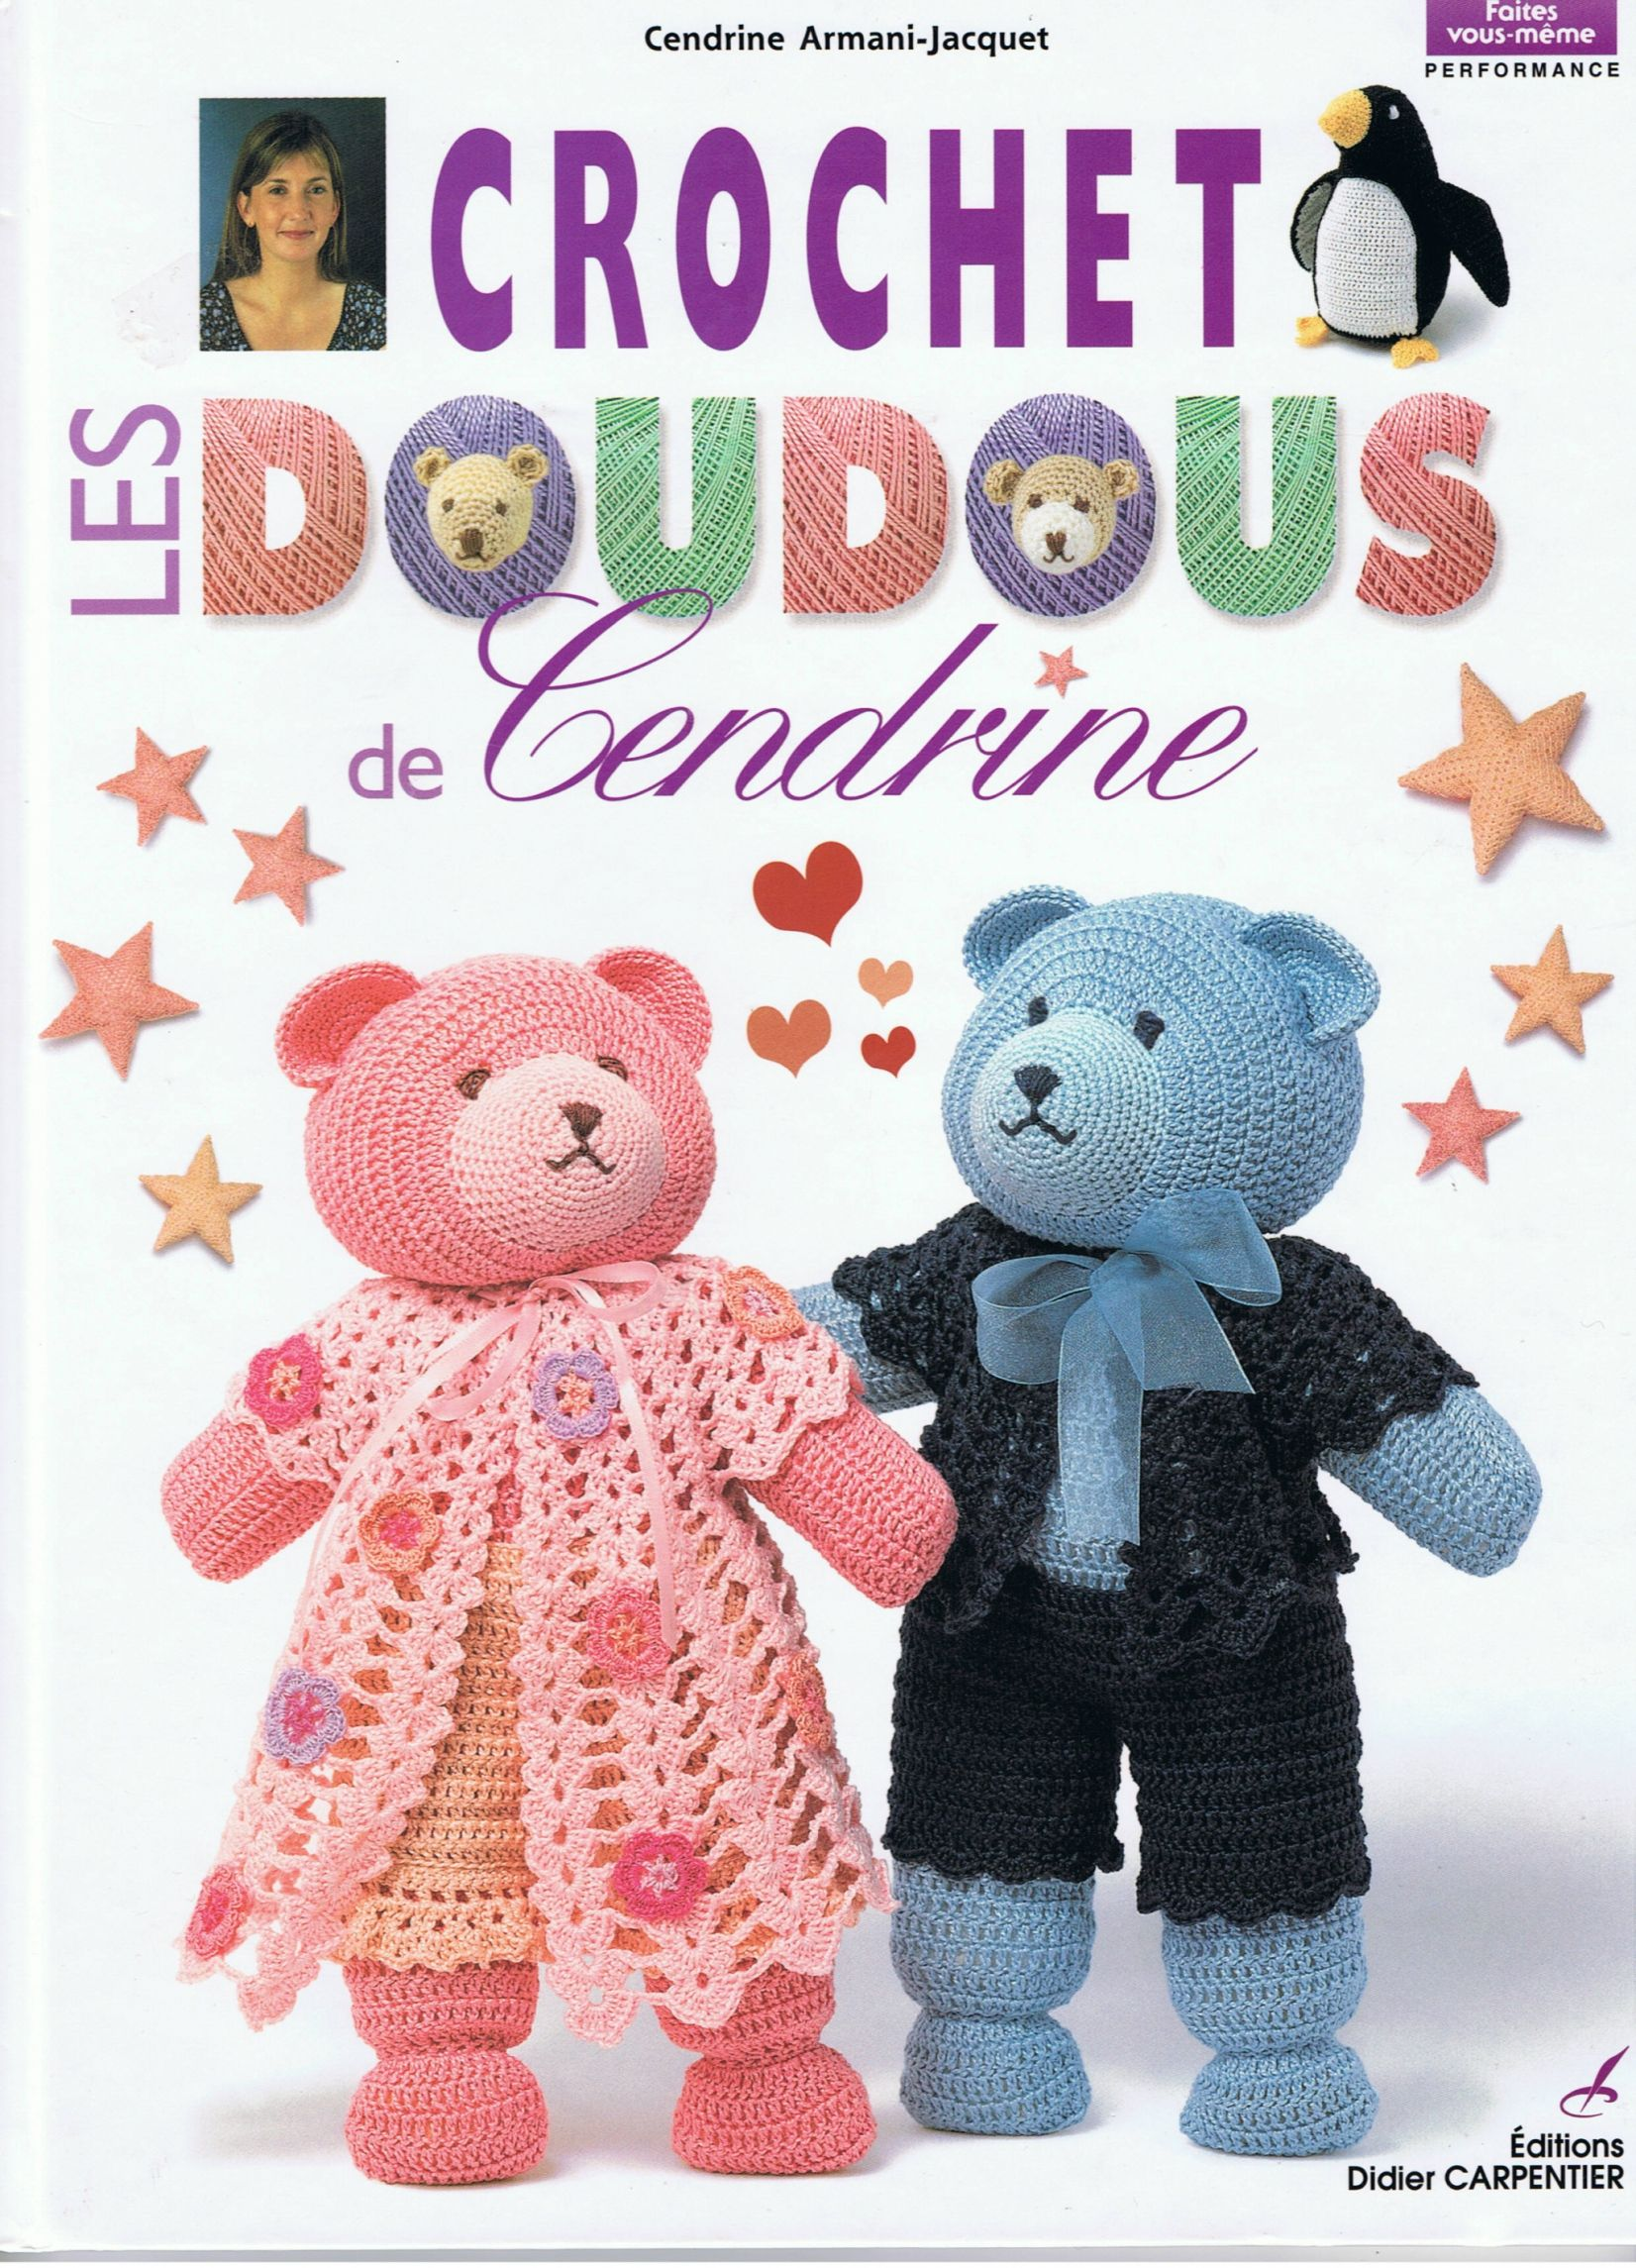 Download Crochet Book: Les Doudous de Cendrine Volume1-Editions Didier Carpentier-Fait yourself published in 2002 – FINOUCREATOU.COM